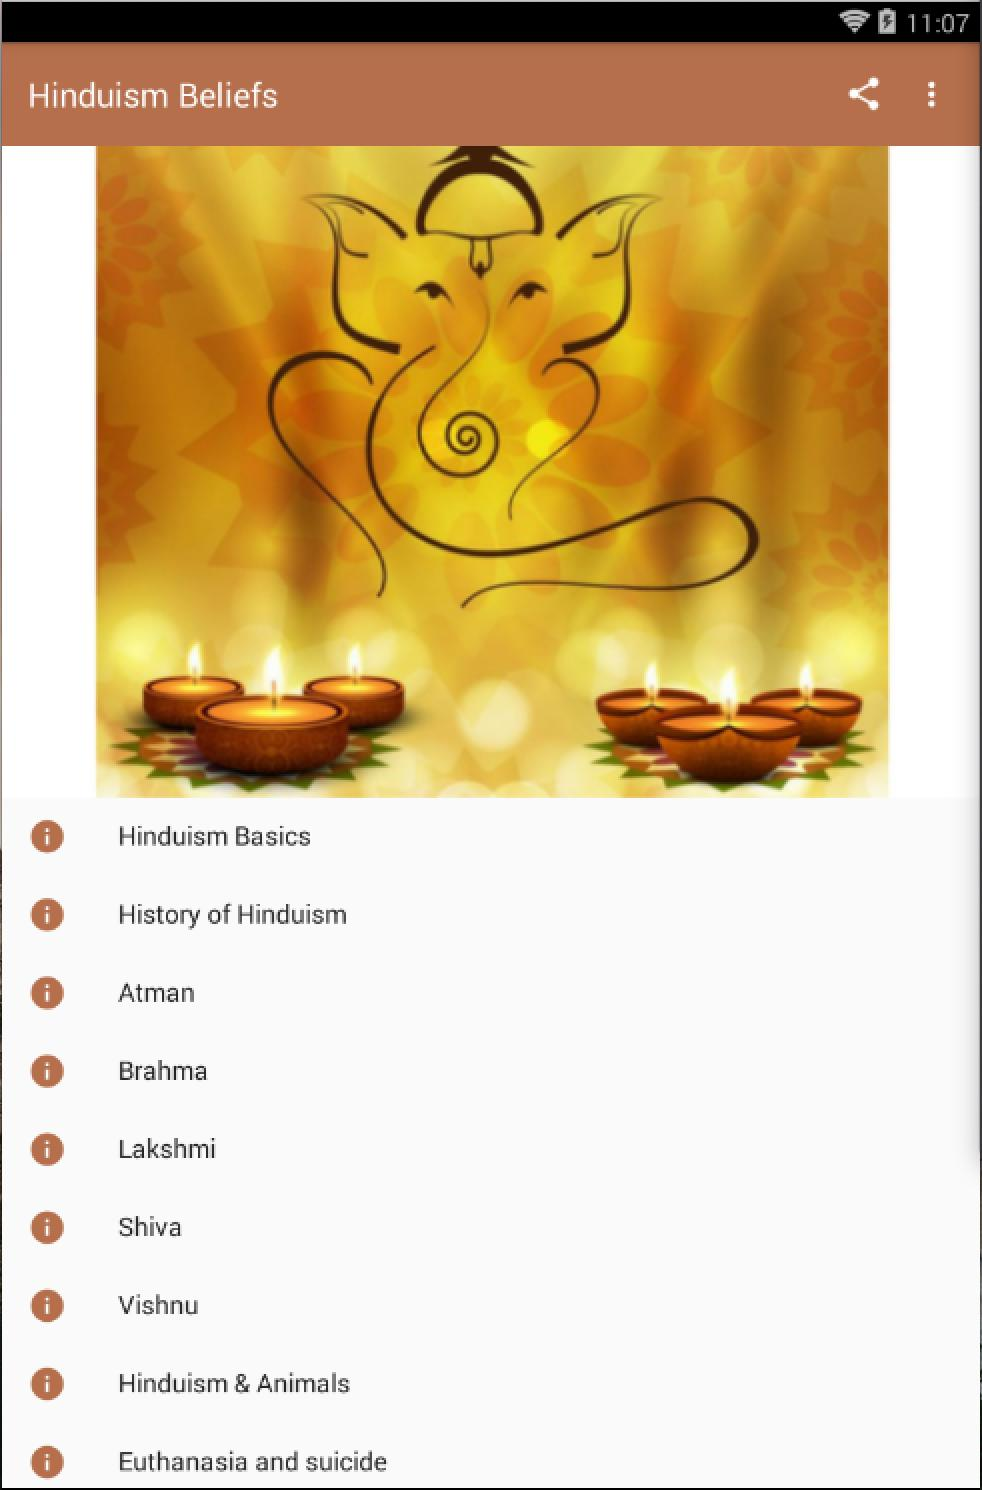 HINDUISM BELIEFS for Android - APK Download